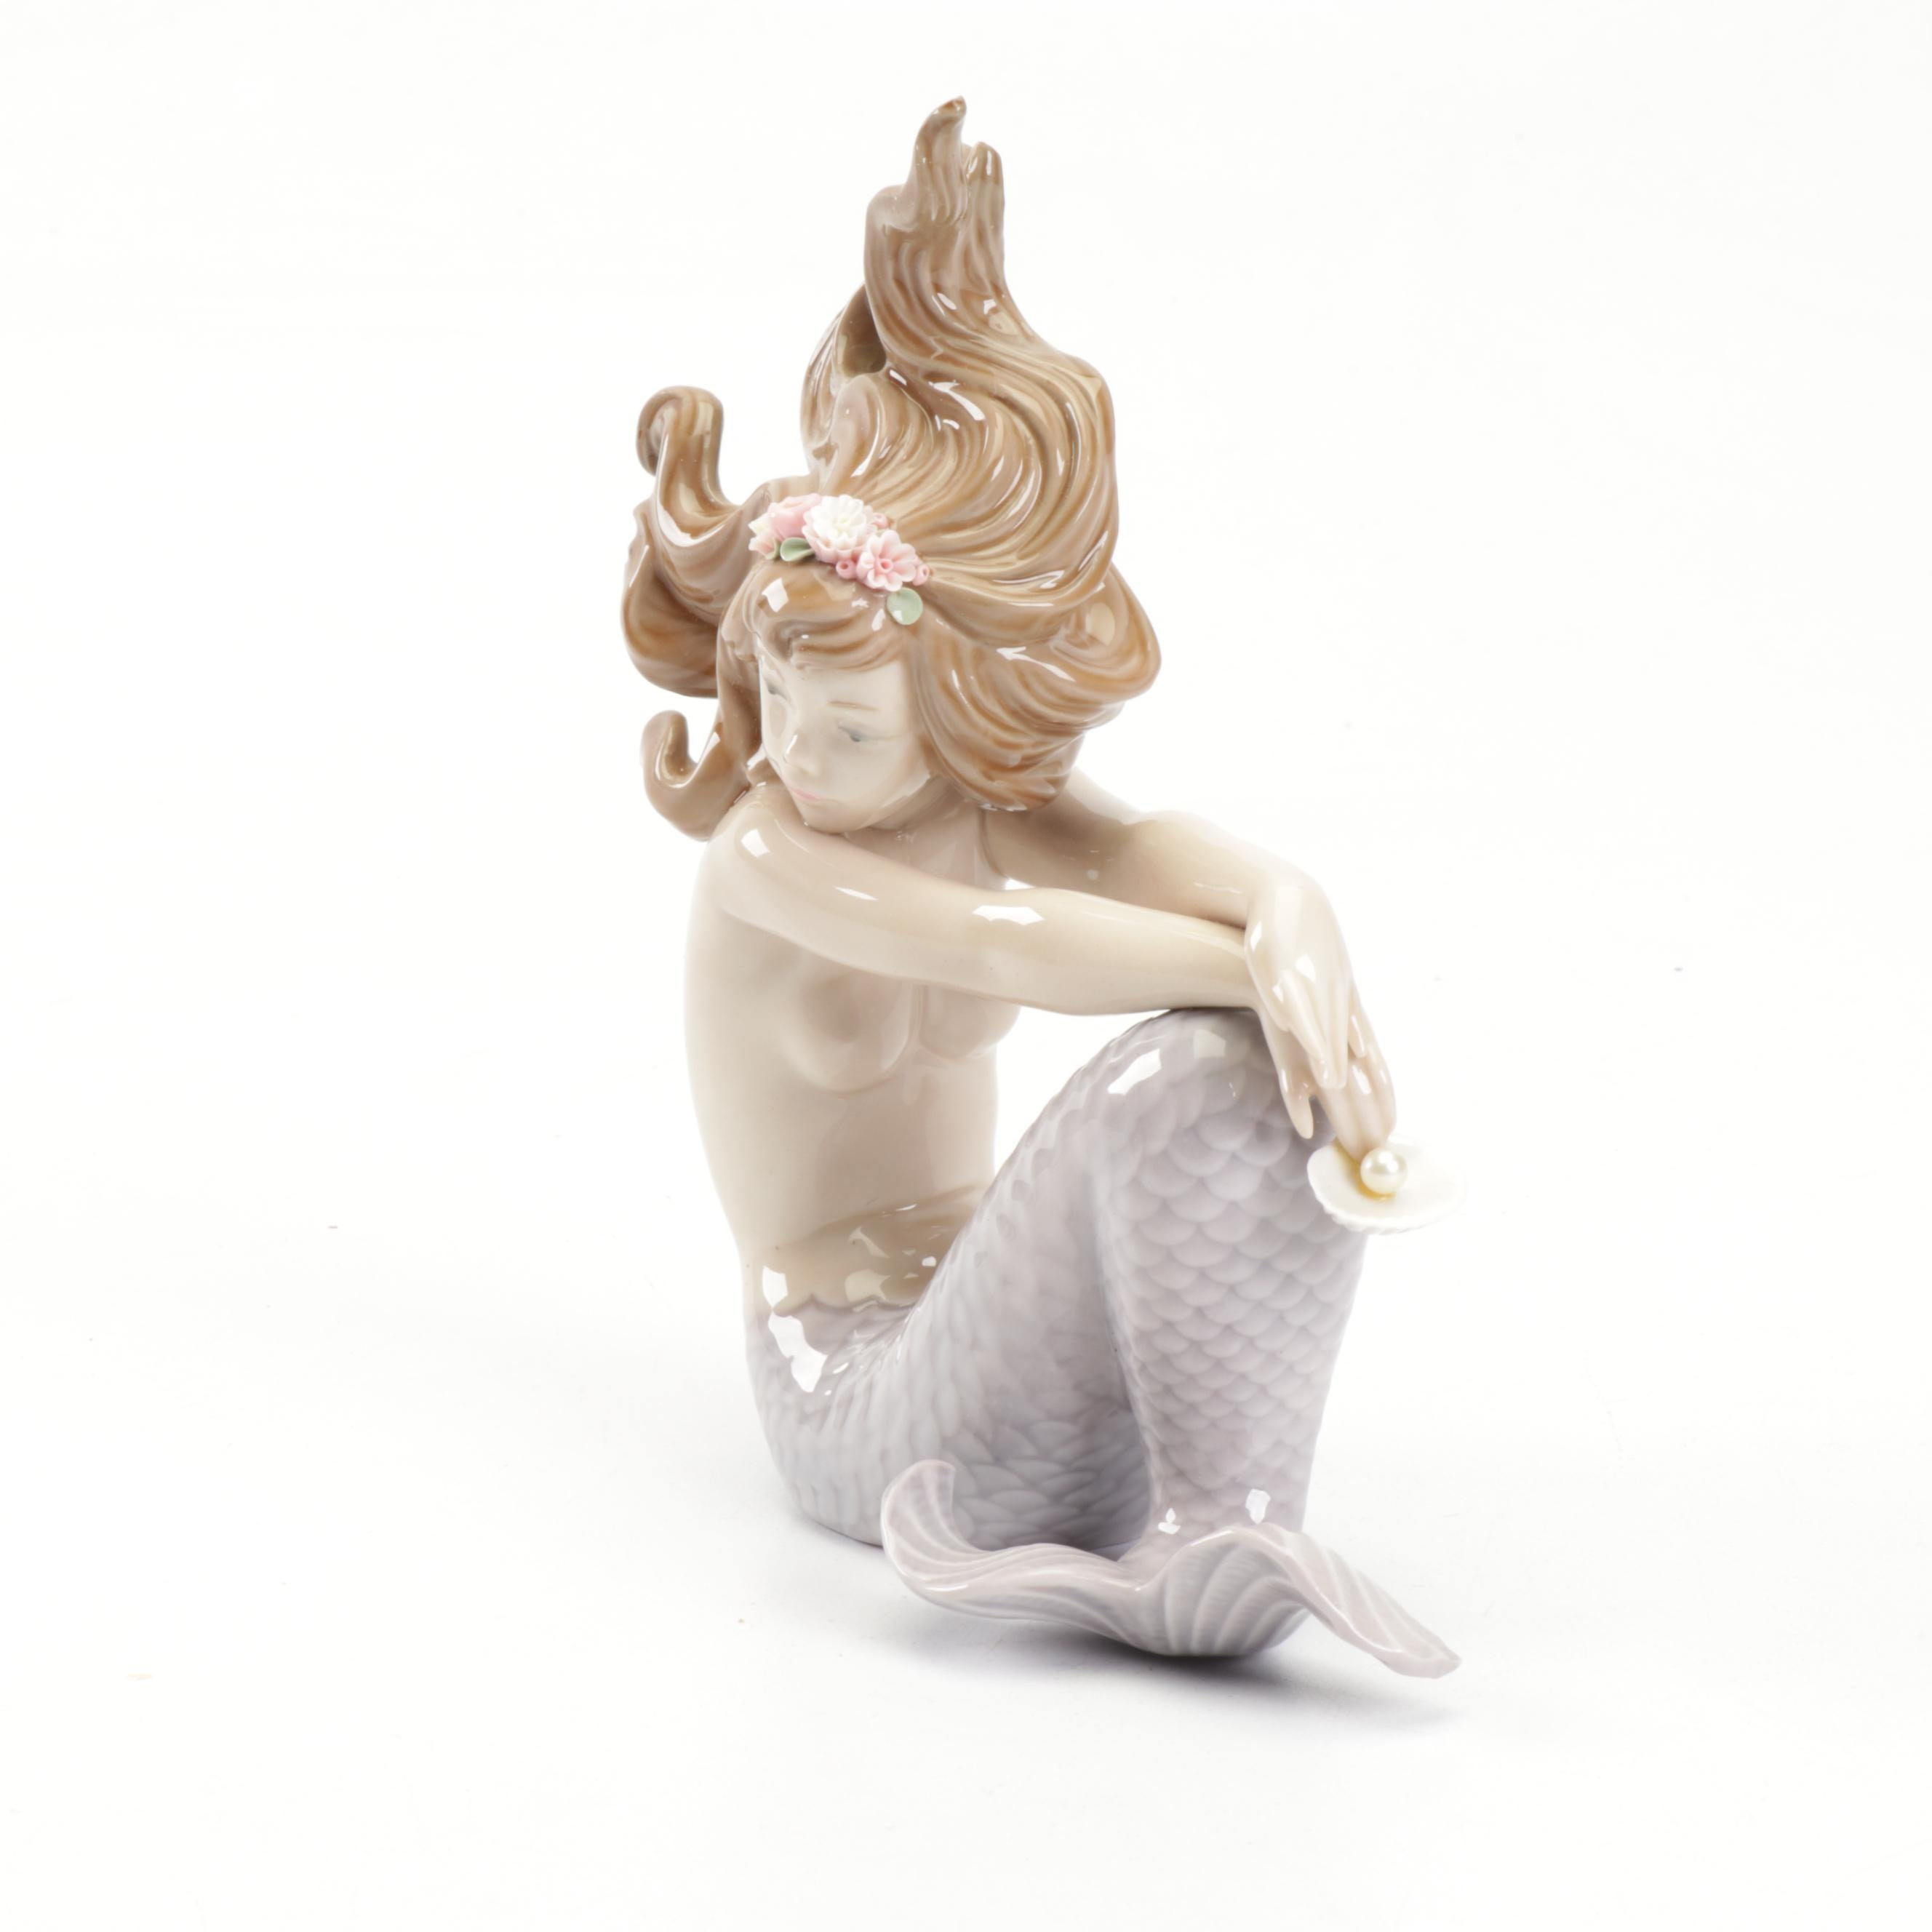 Lladró Porcelain Mermaid Figurine, 1980s